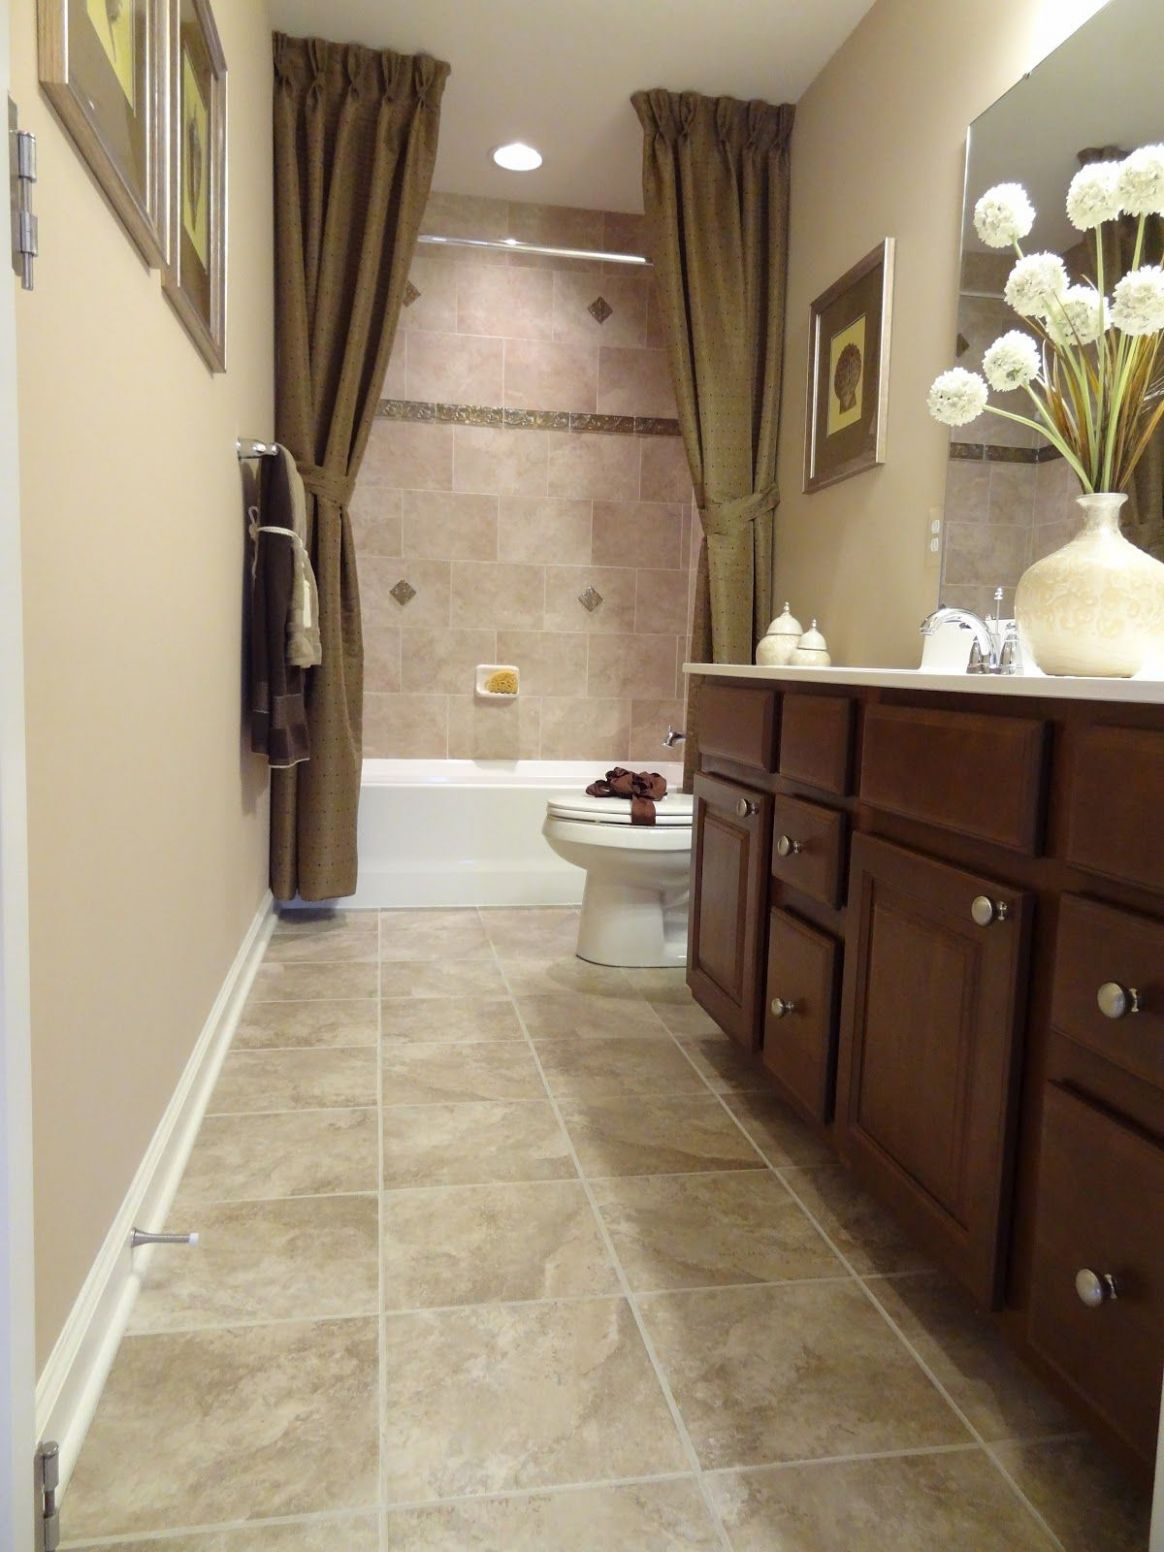 Long Narrow Bathroom Designs (With images) | Full bathroom remodel ..